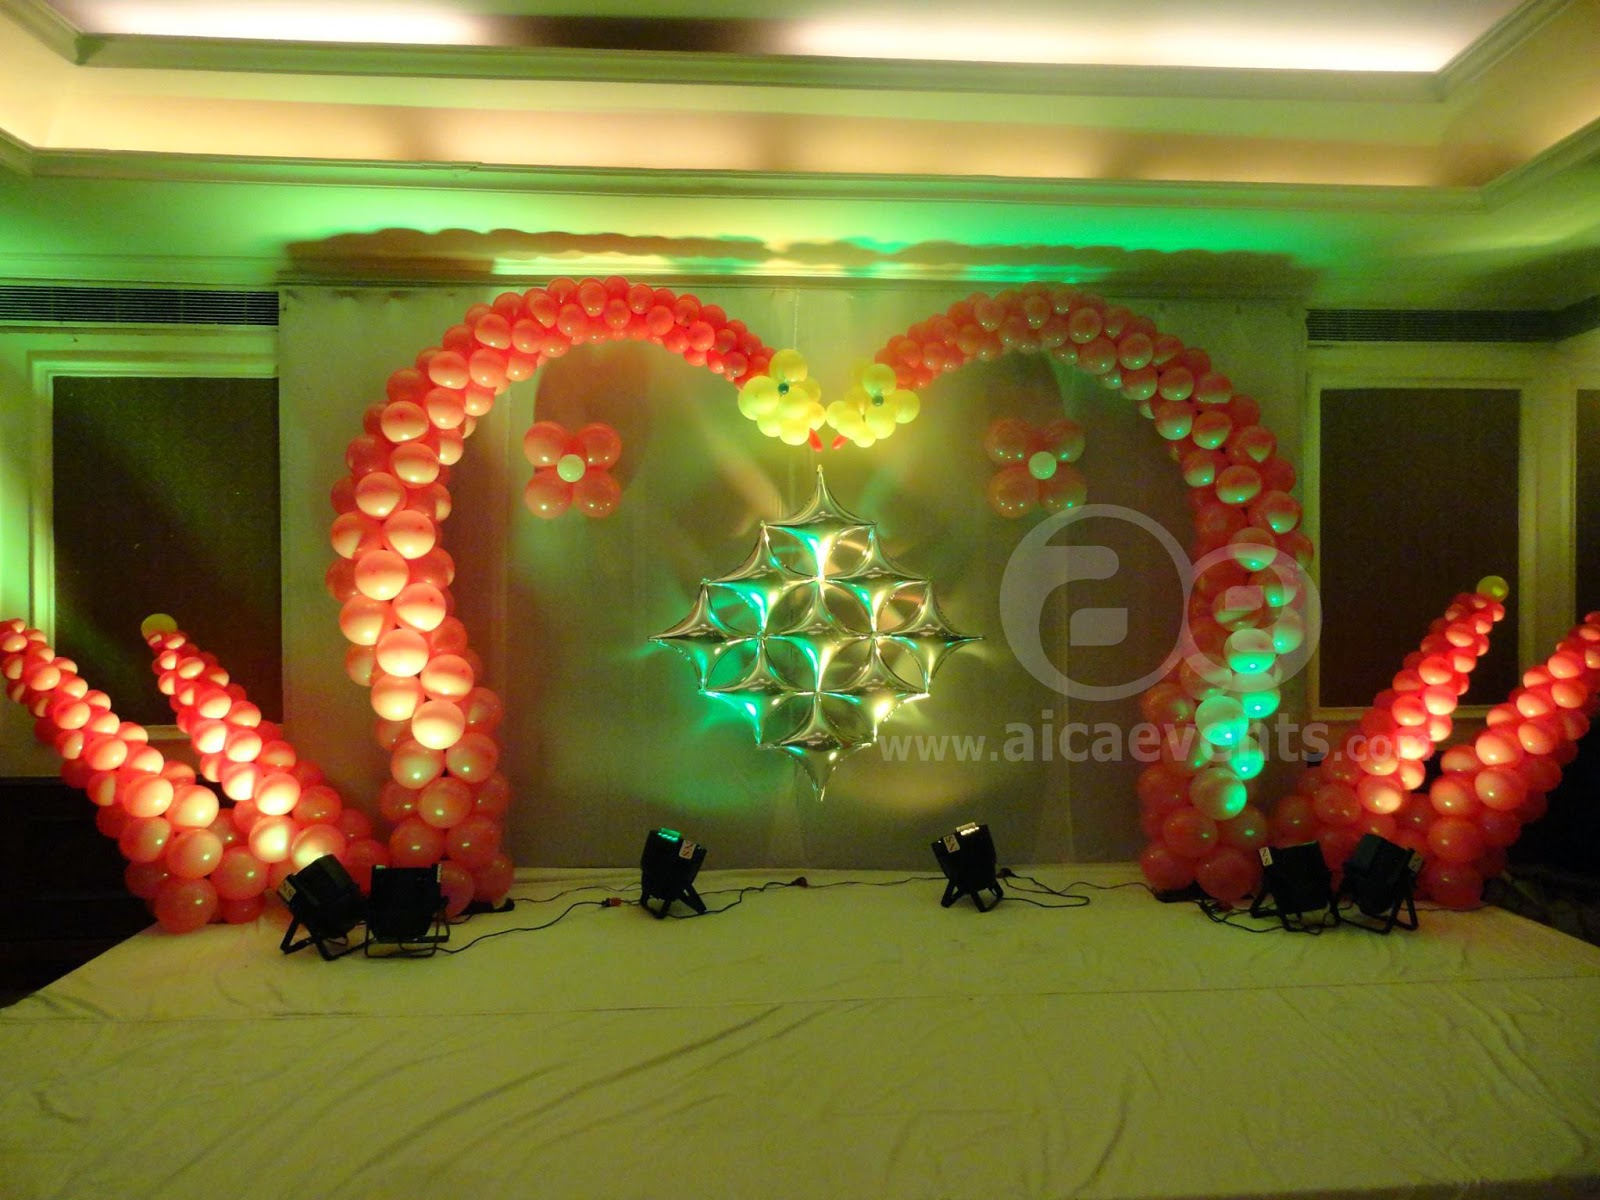 Aicaevents india balloon decorations with different stage for Balloon decoration for stage